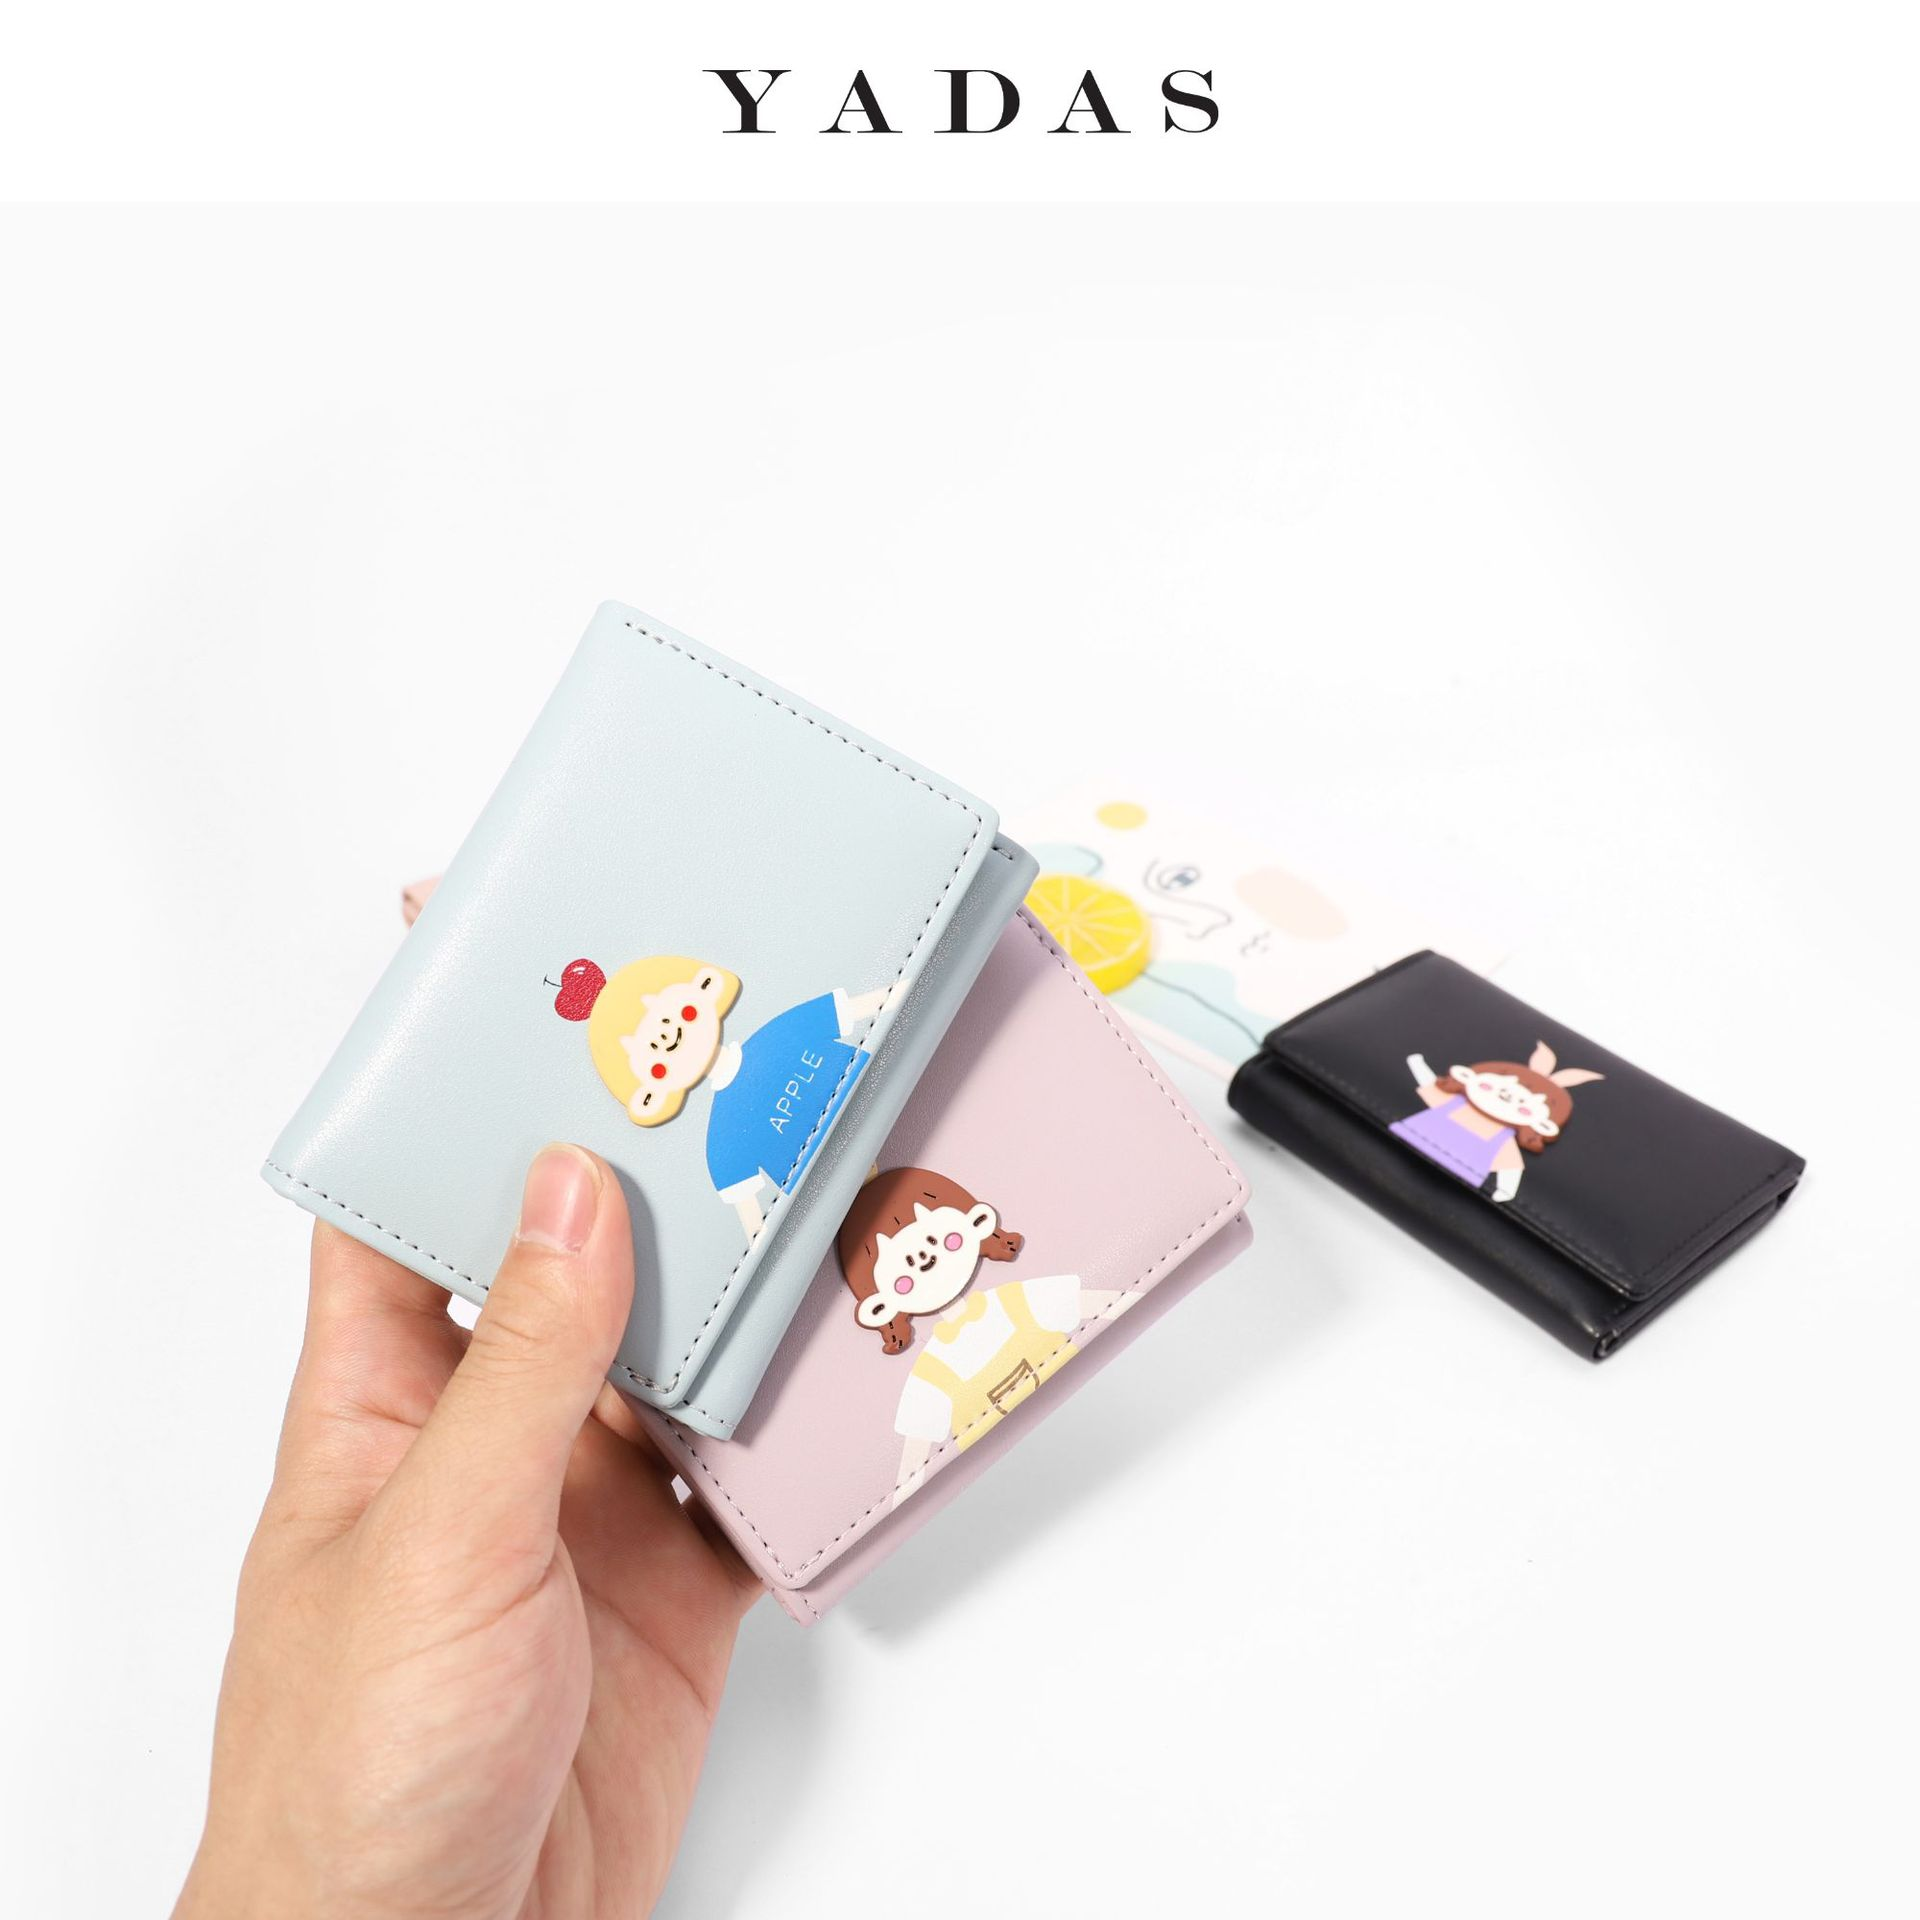 Adorable Printed Folded Wallet for Birthday Gifts